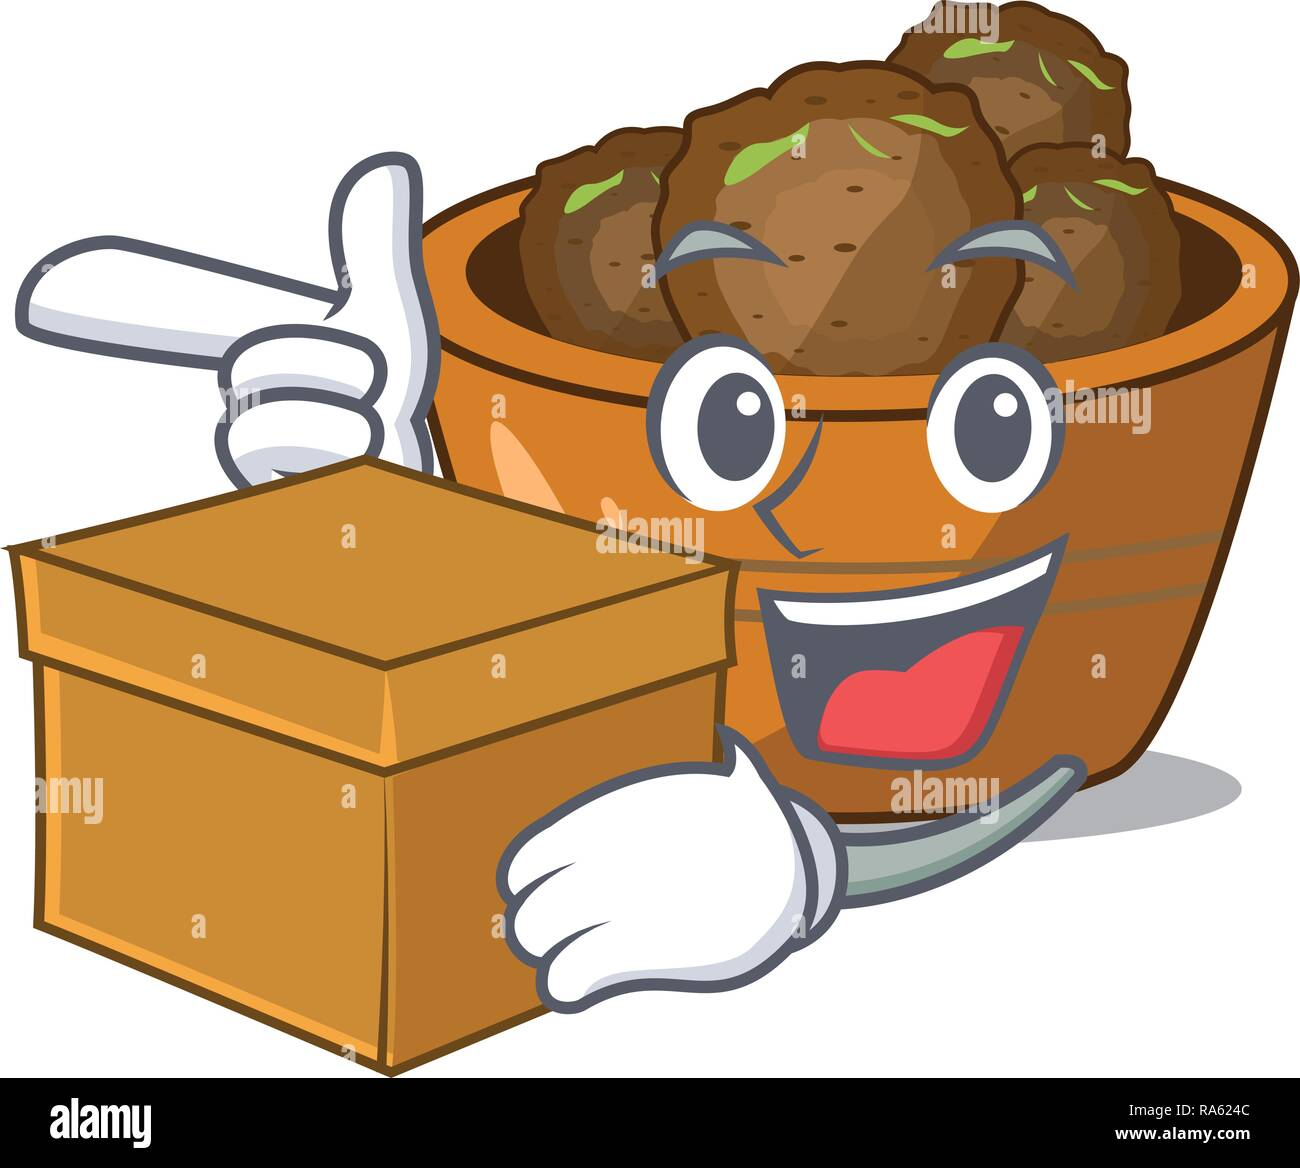 With box gulab jamun on the character table - Stock Vector